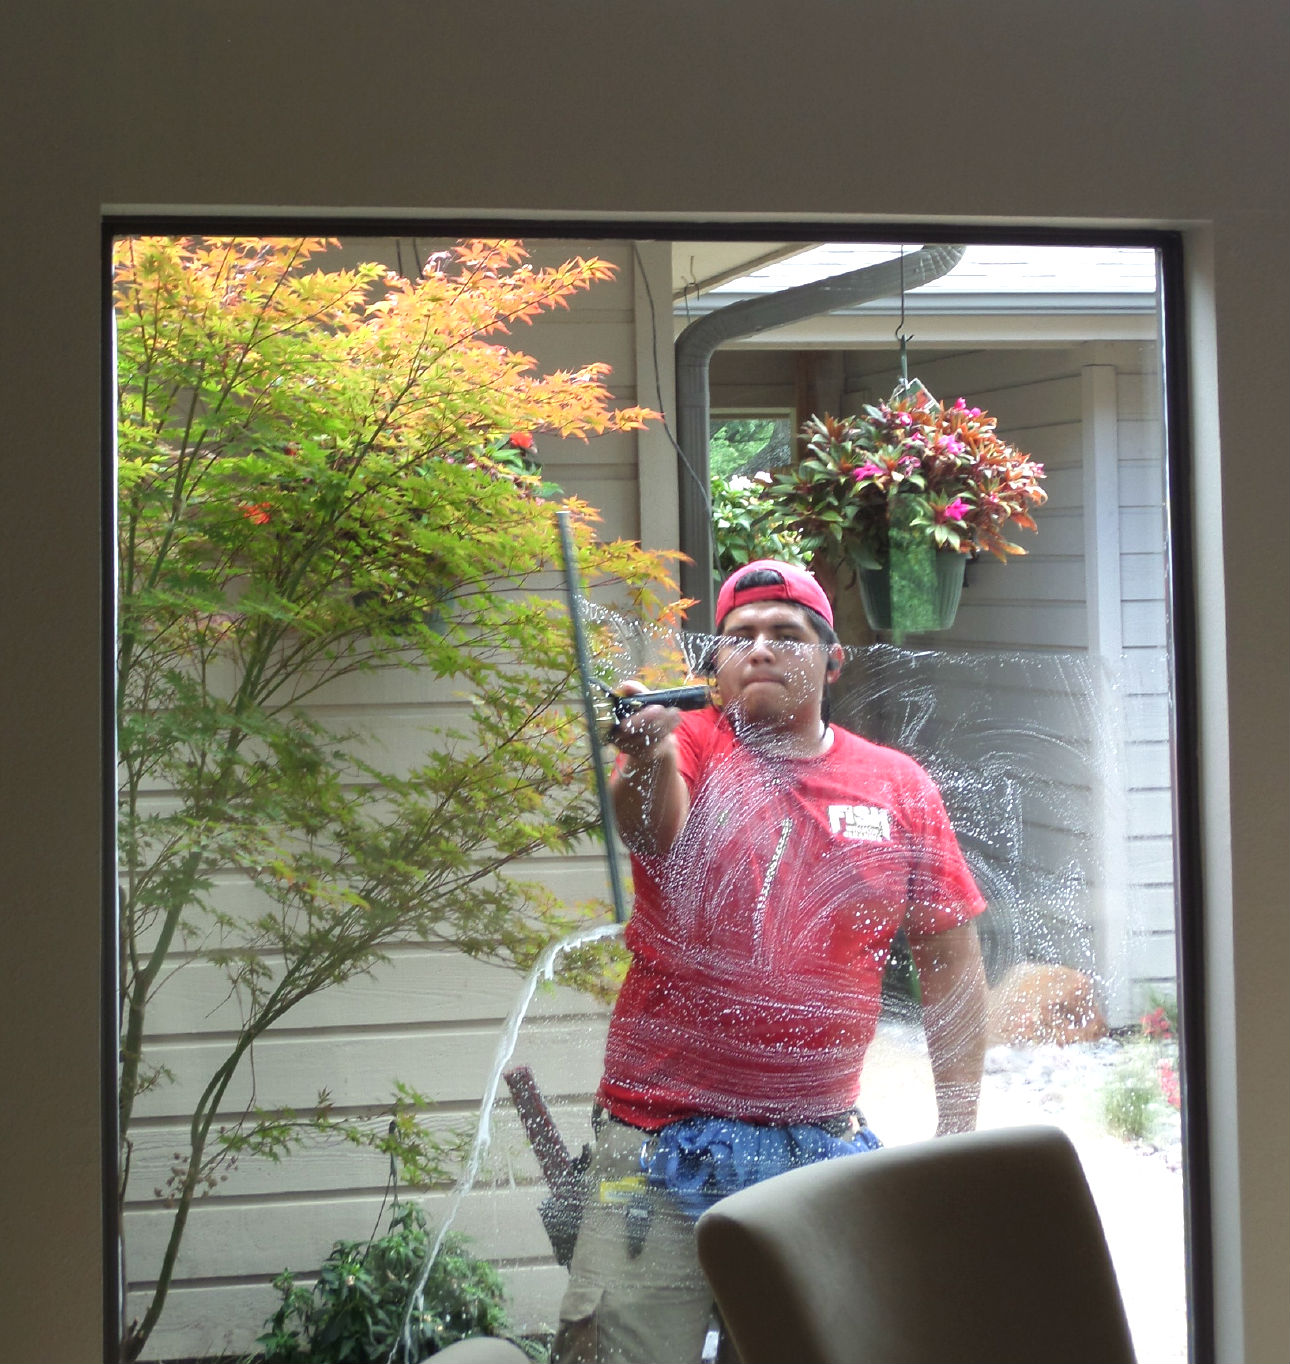 Fish Window Cleaning Dallas Residential Window Cleaning